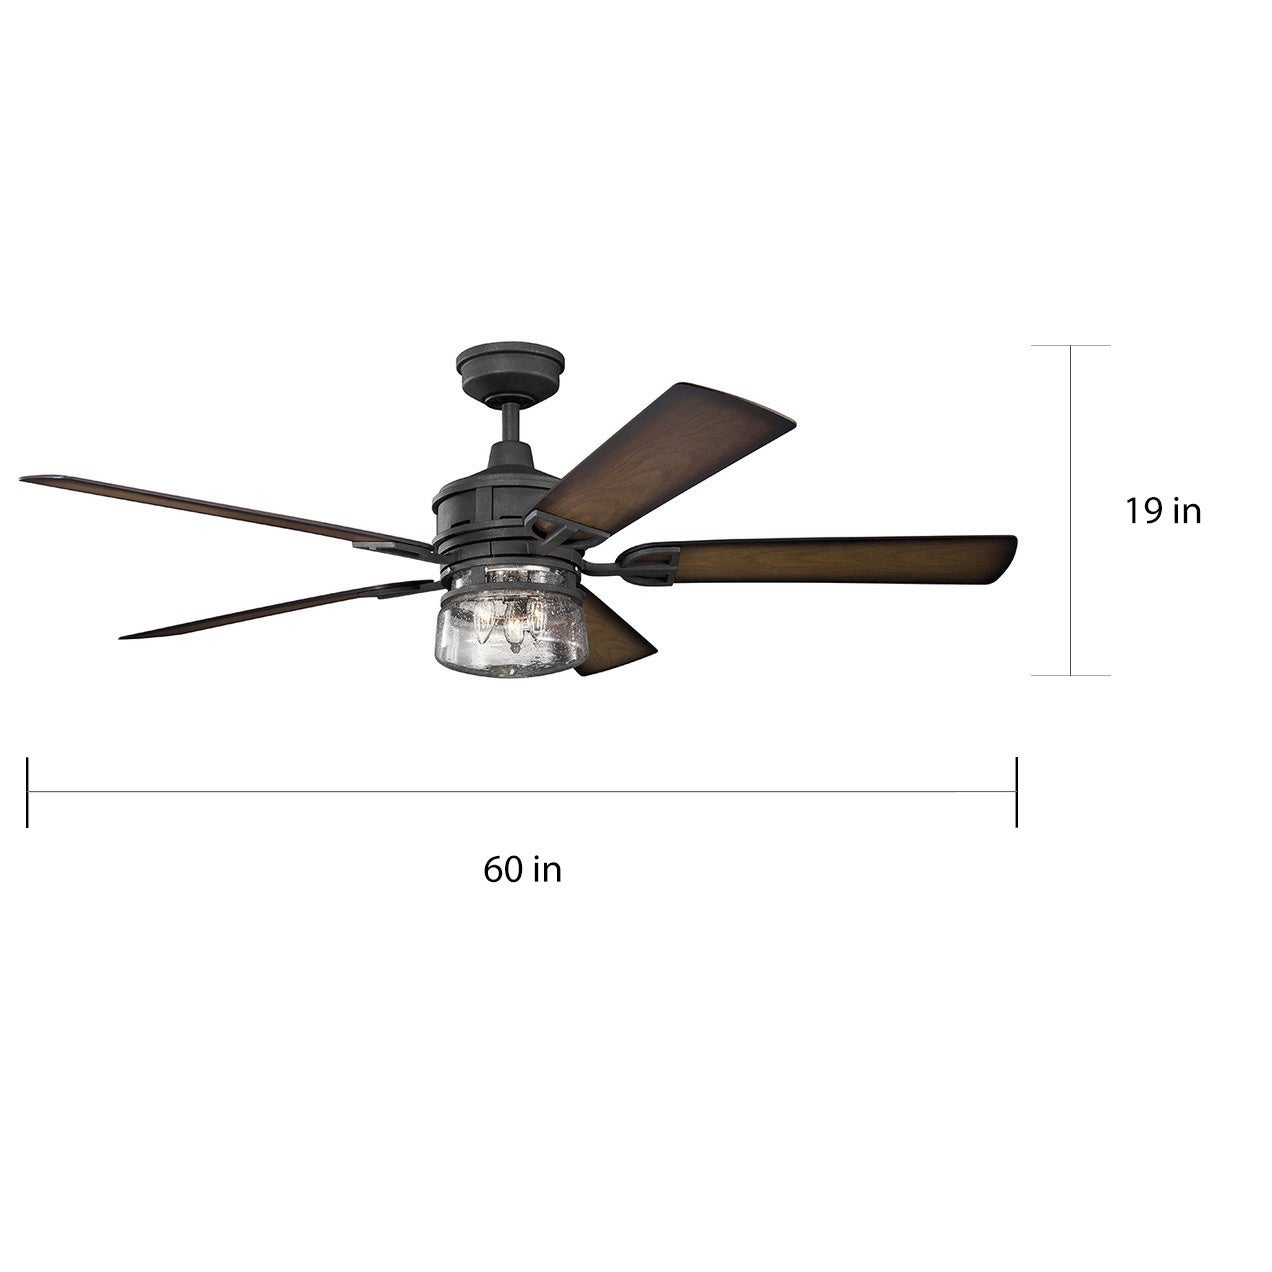 Kichler Lighting Lyndon Patio Collection 60 Inch Distressed Black Ceiling Fan W Light Free Today Com 14274174